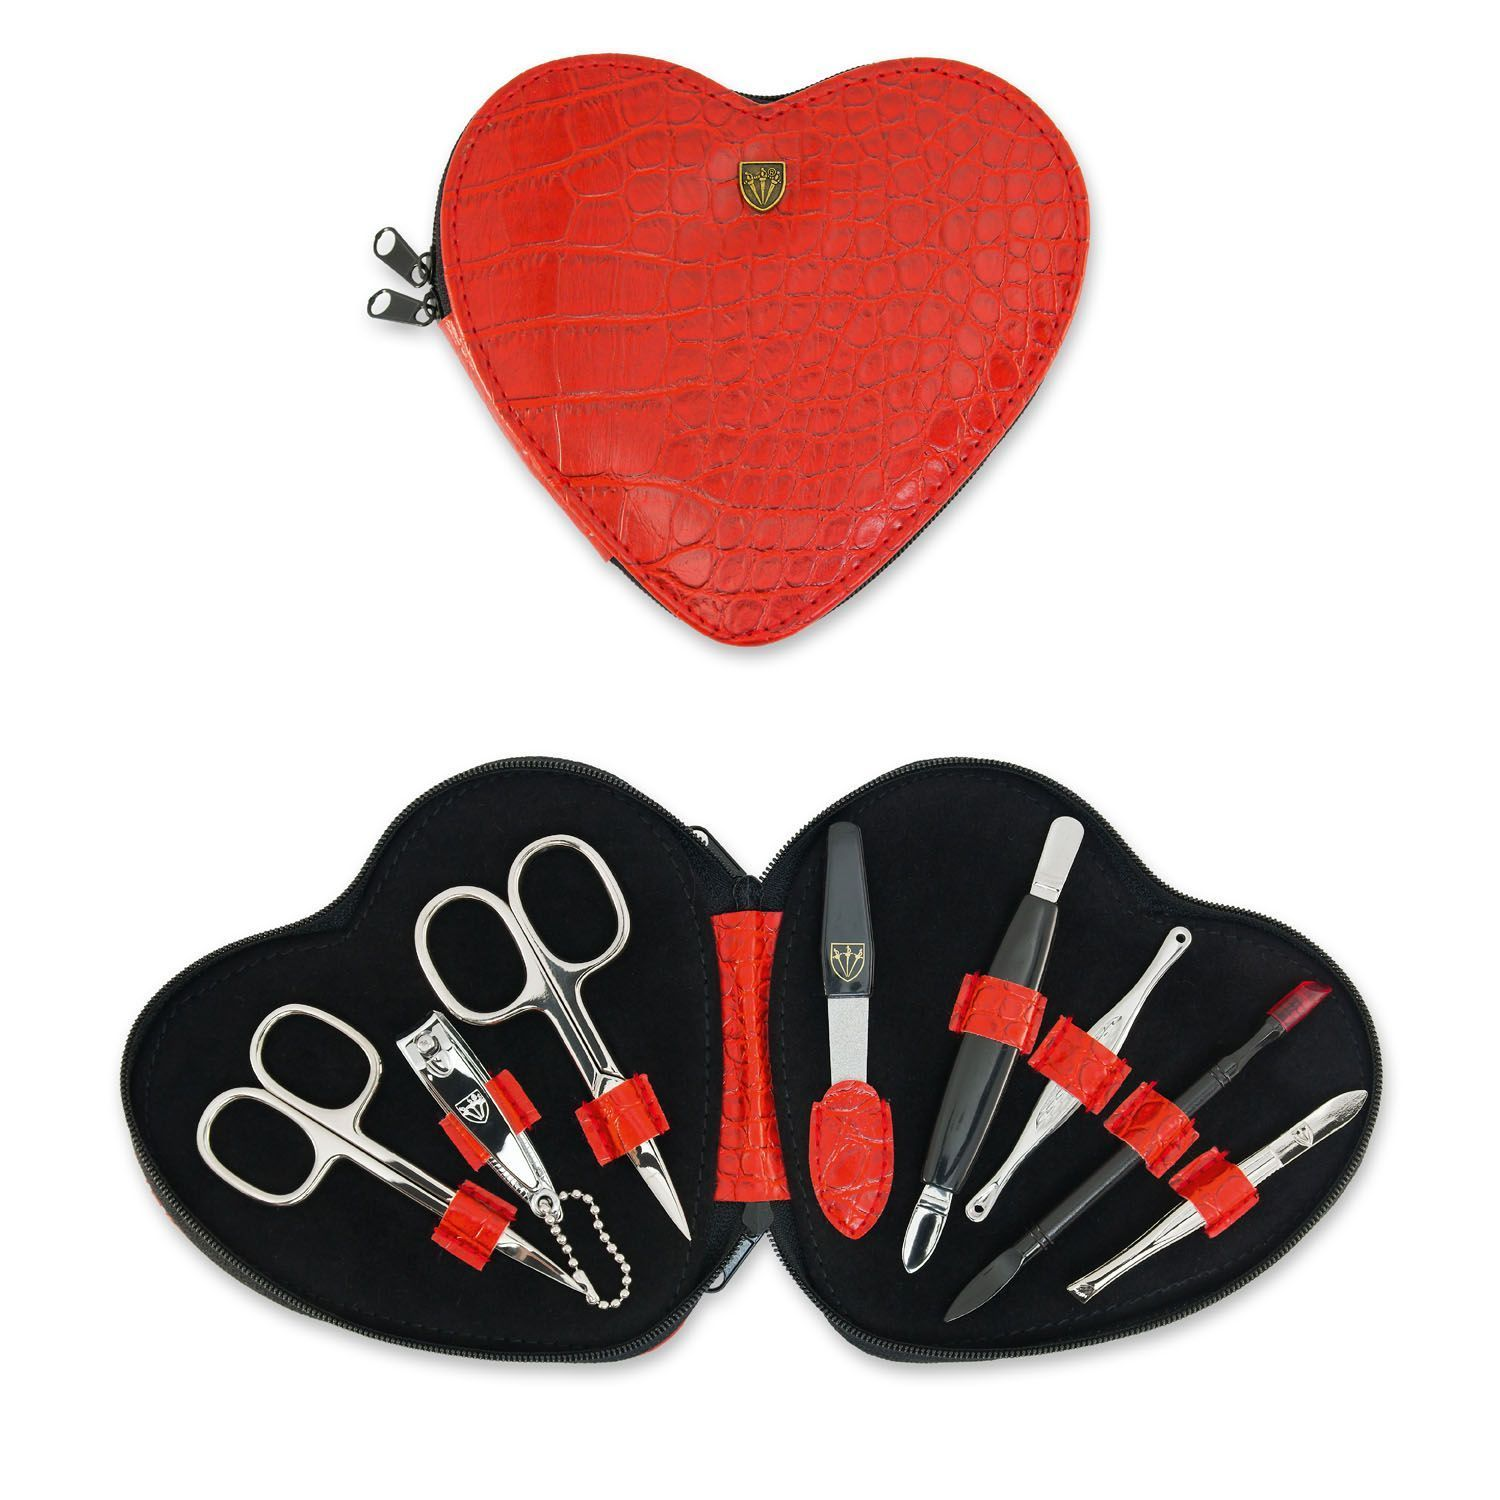 Kellermann Manicure Set Heart Croco Red 8 Pieces